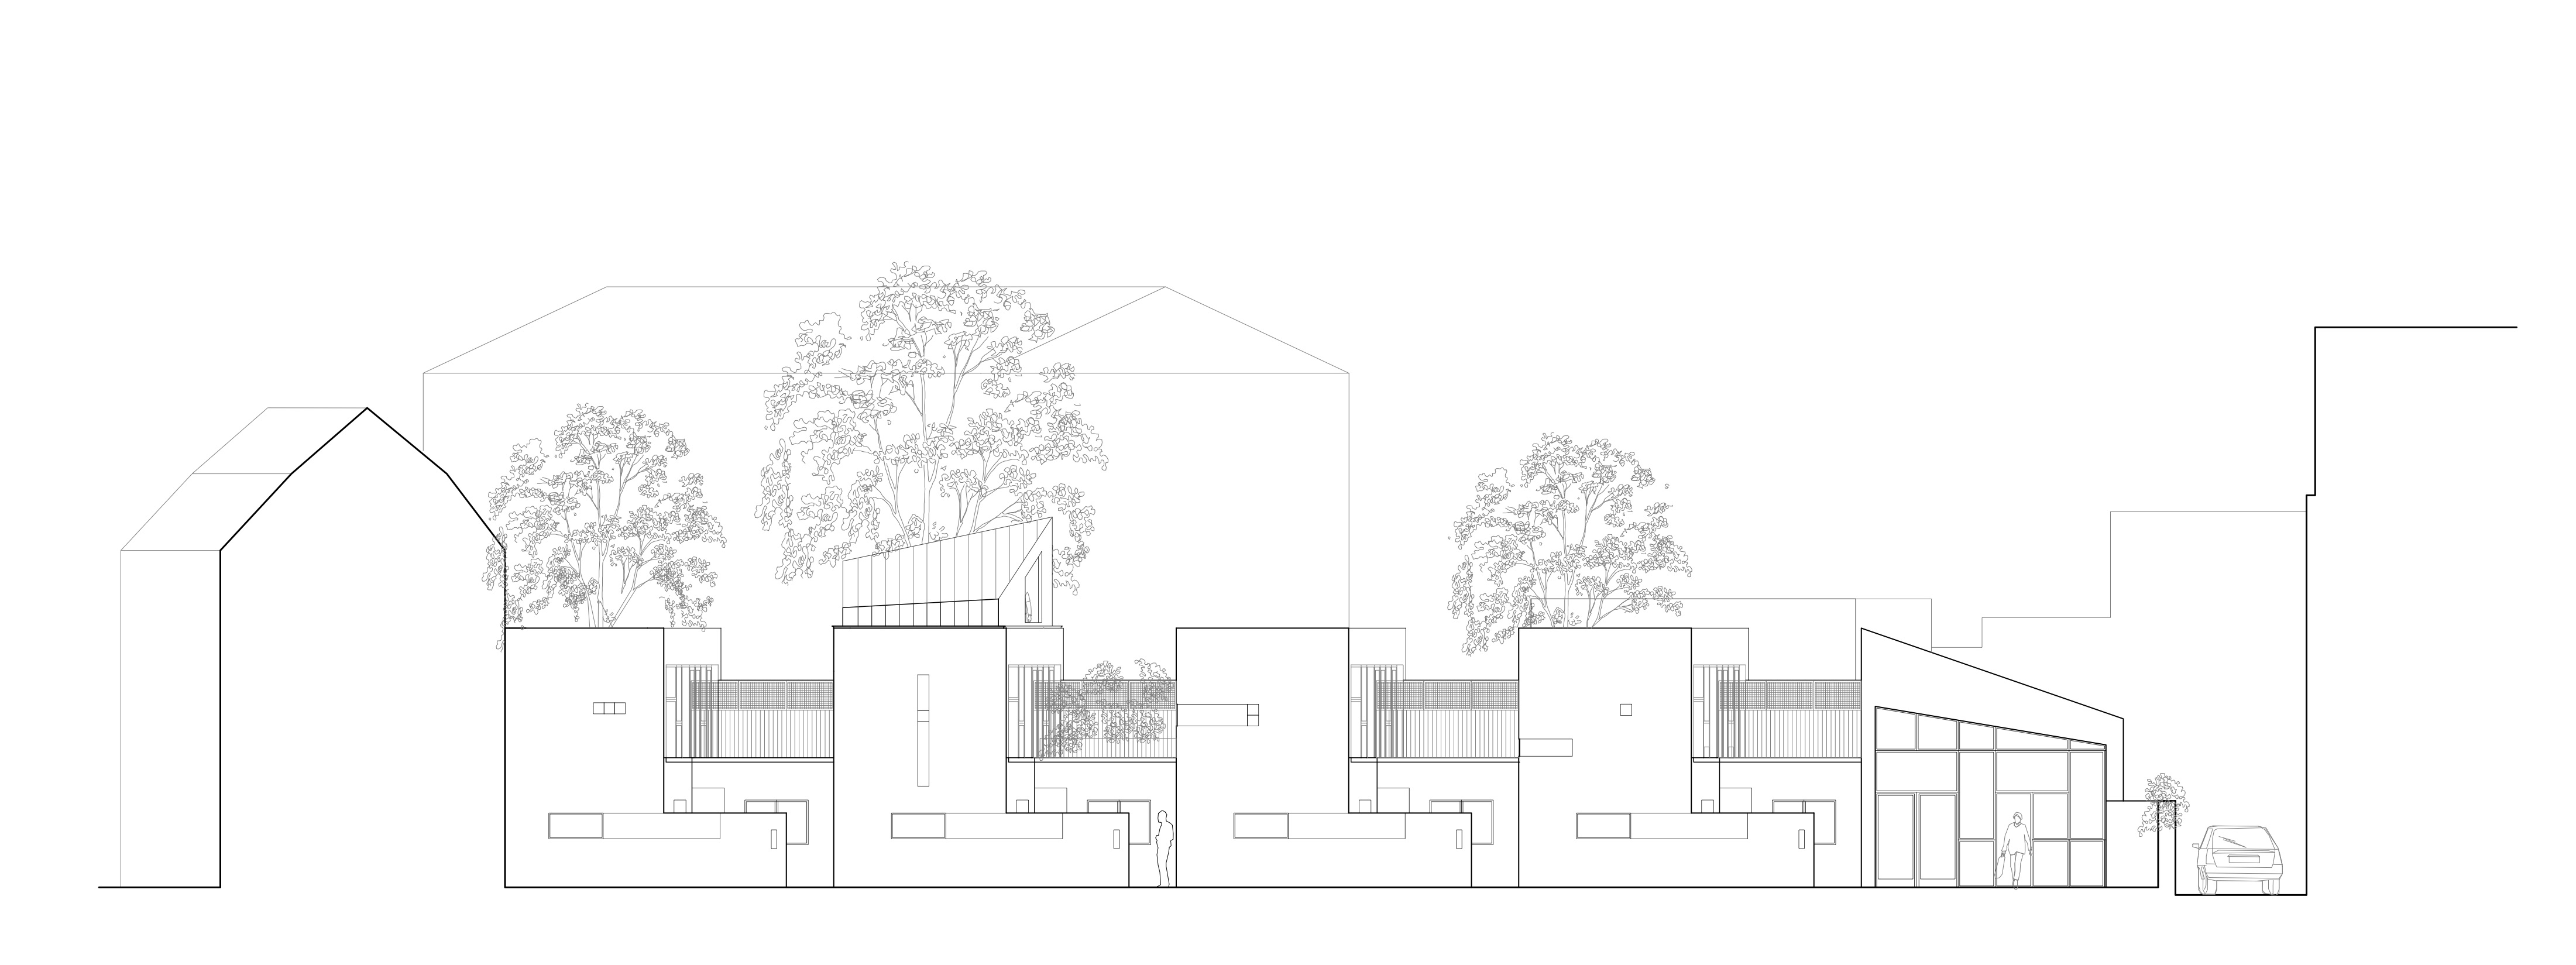 4-colony-mews-context-elevation